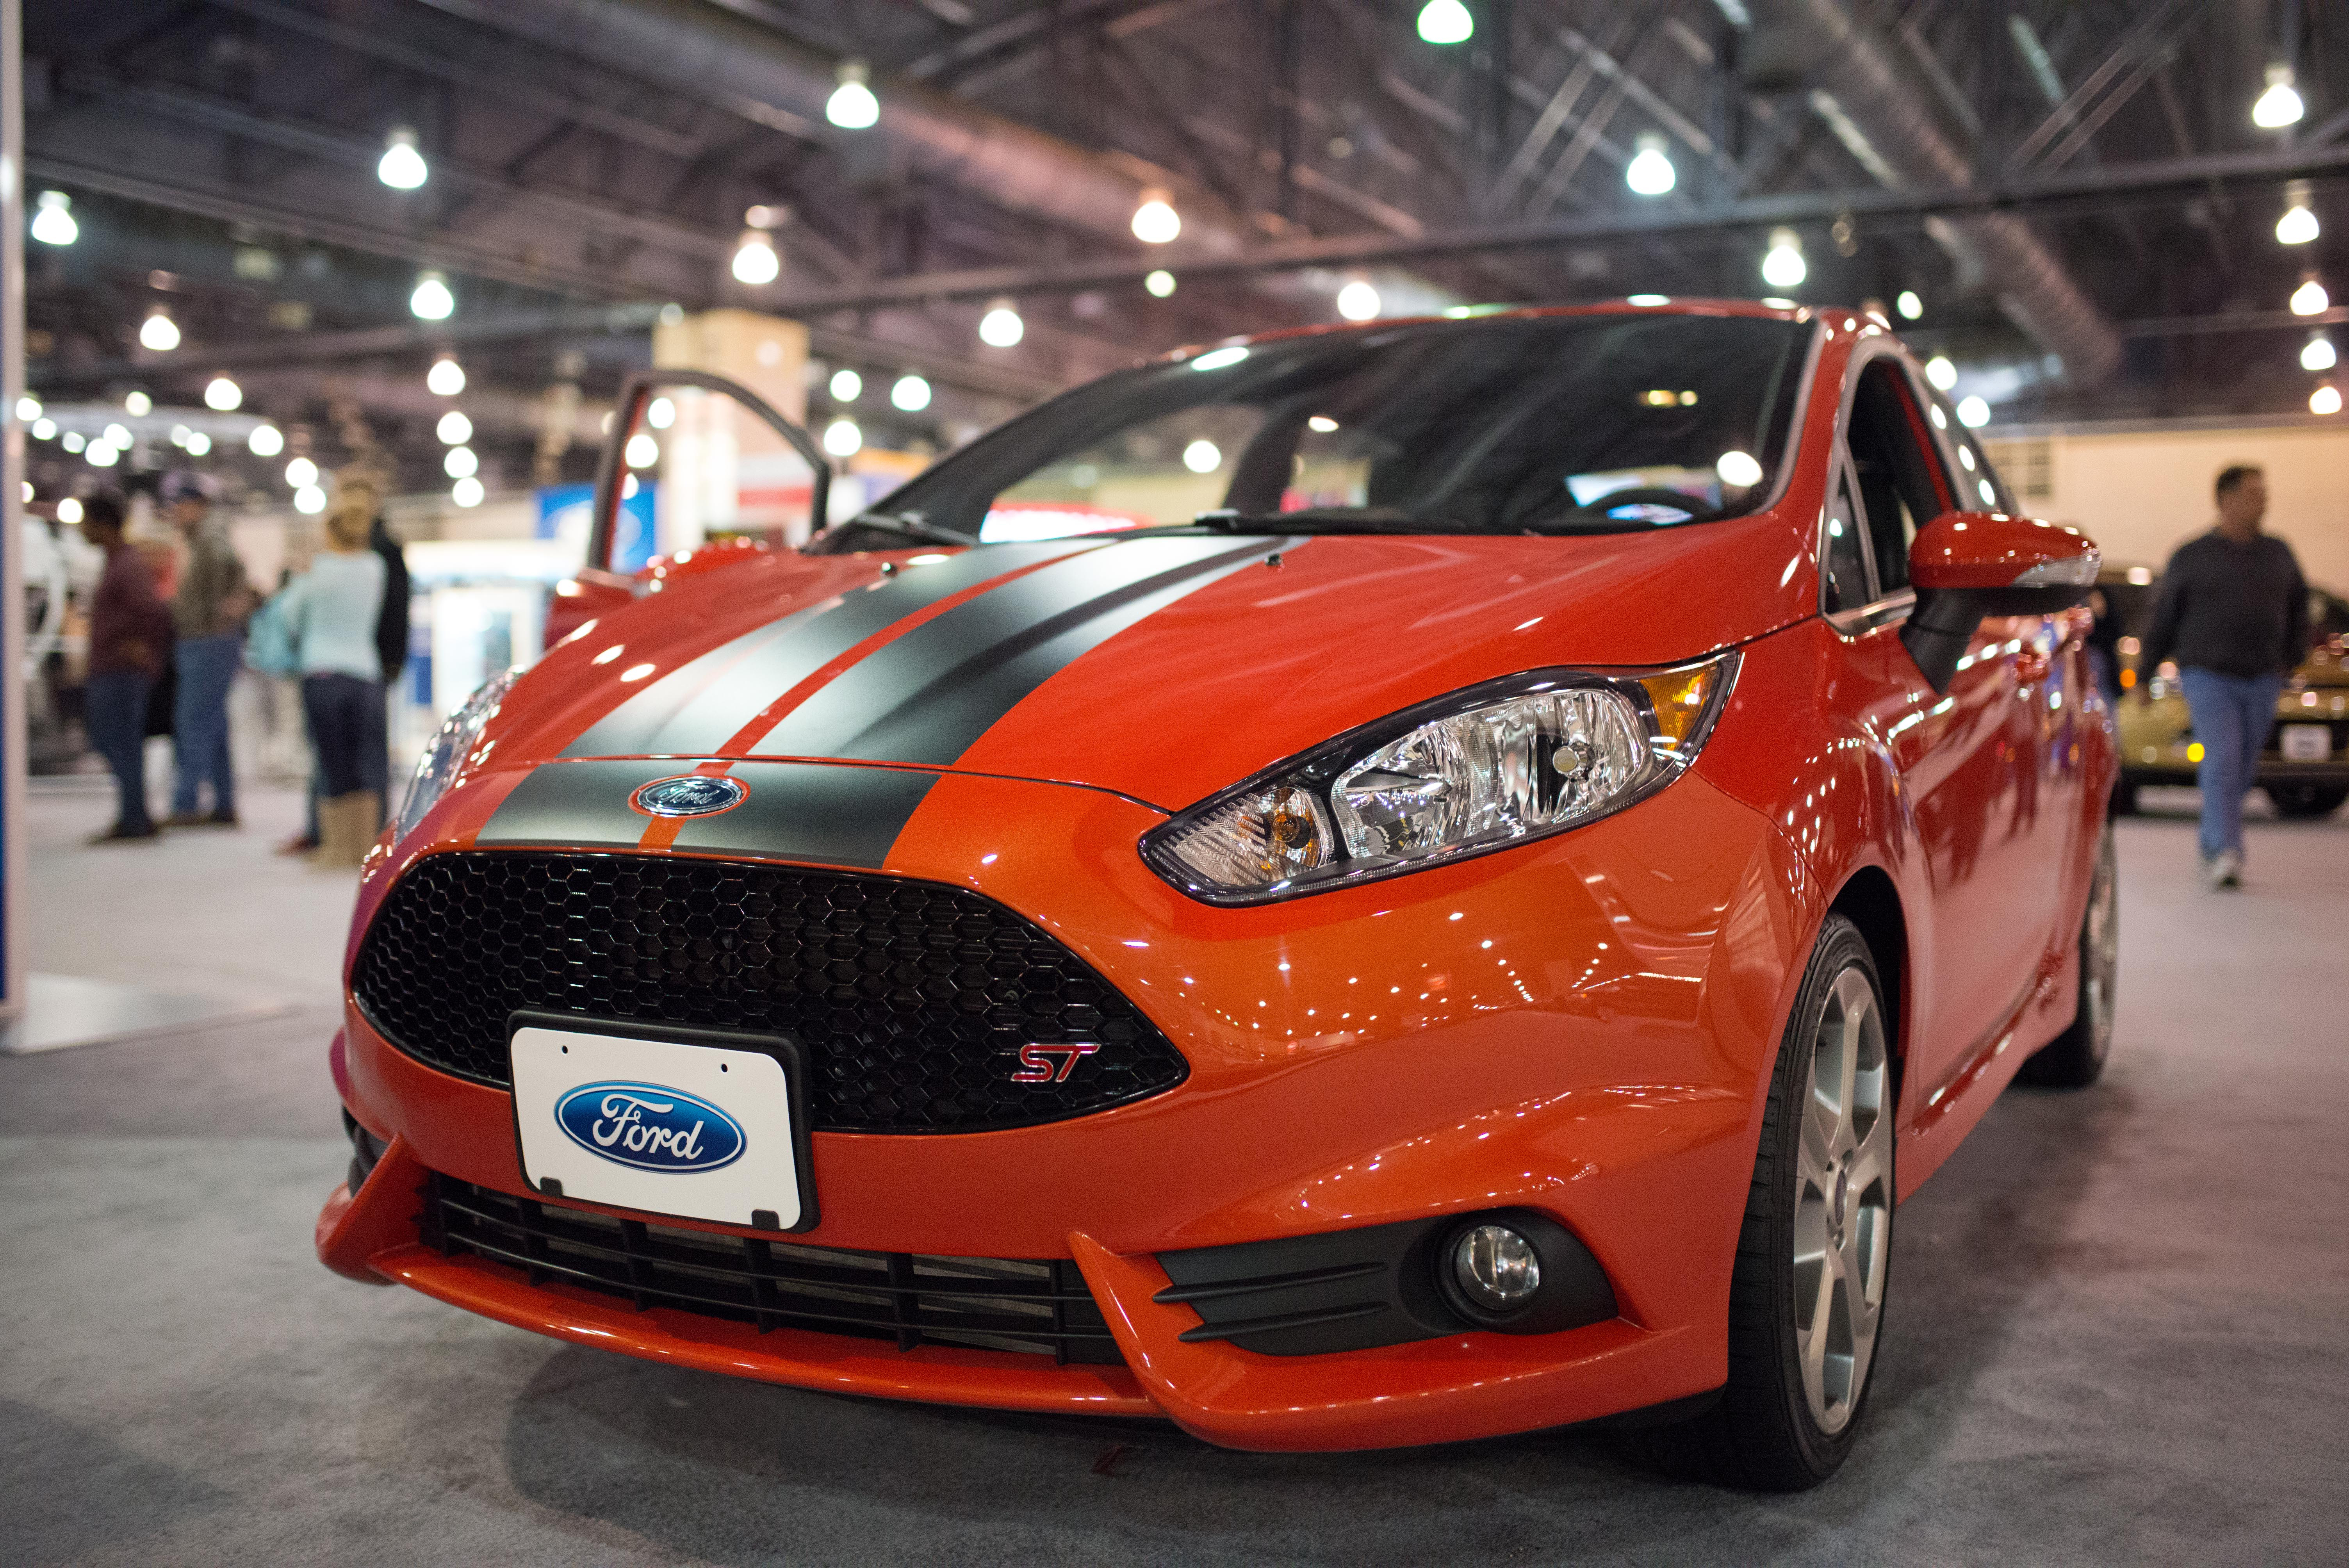 A Recap In Photos Philly Auto Show The Daily Pennsylvanian - Philly car show